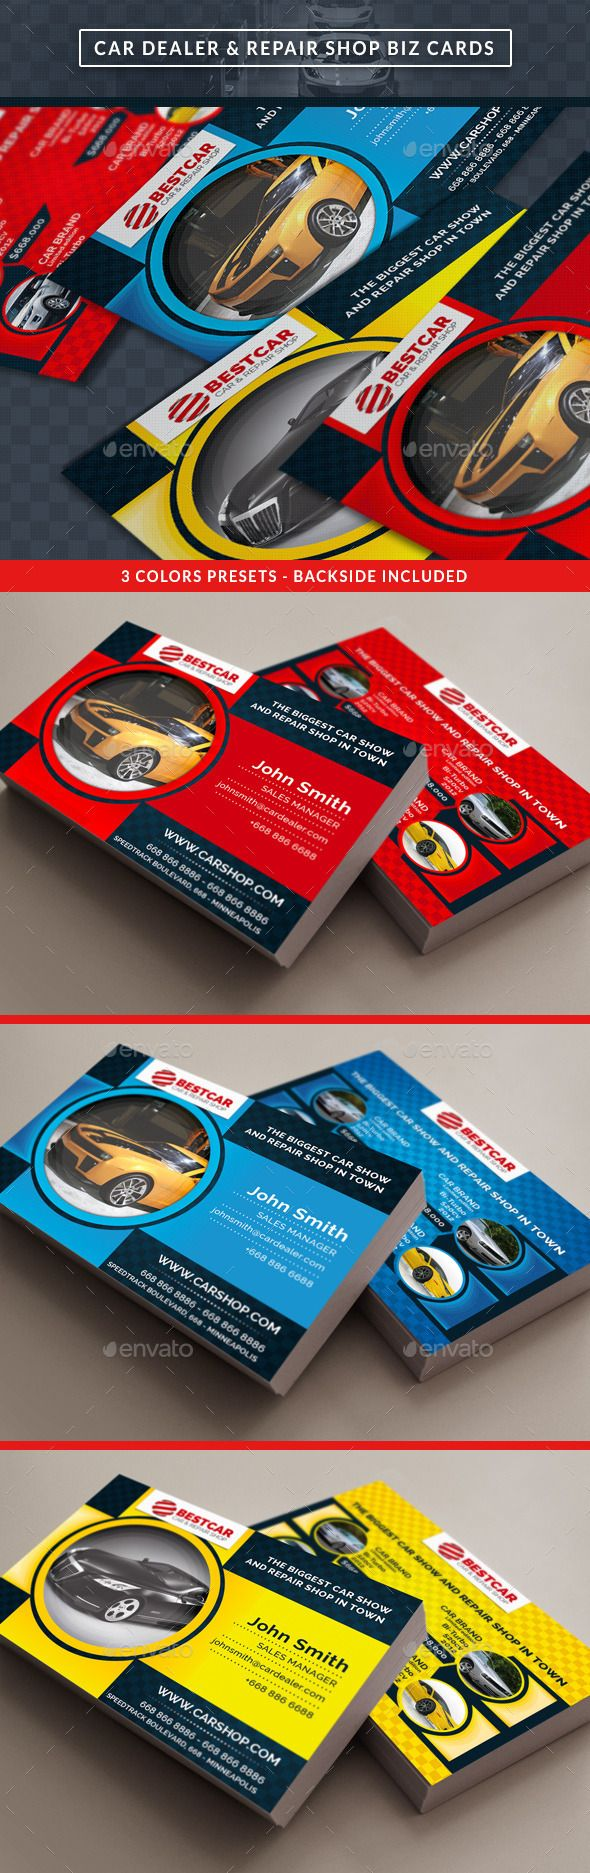 Car Dealer & Auto Services Business Card - Business Cards Print Templates